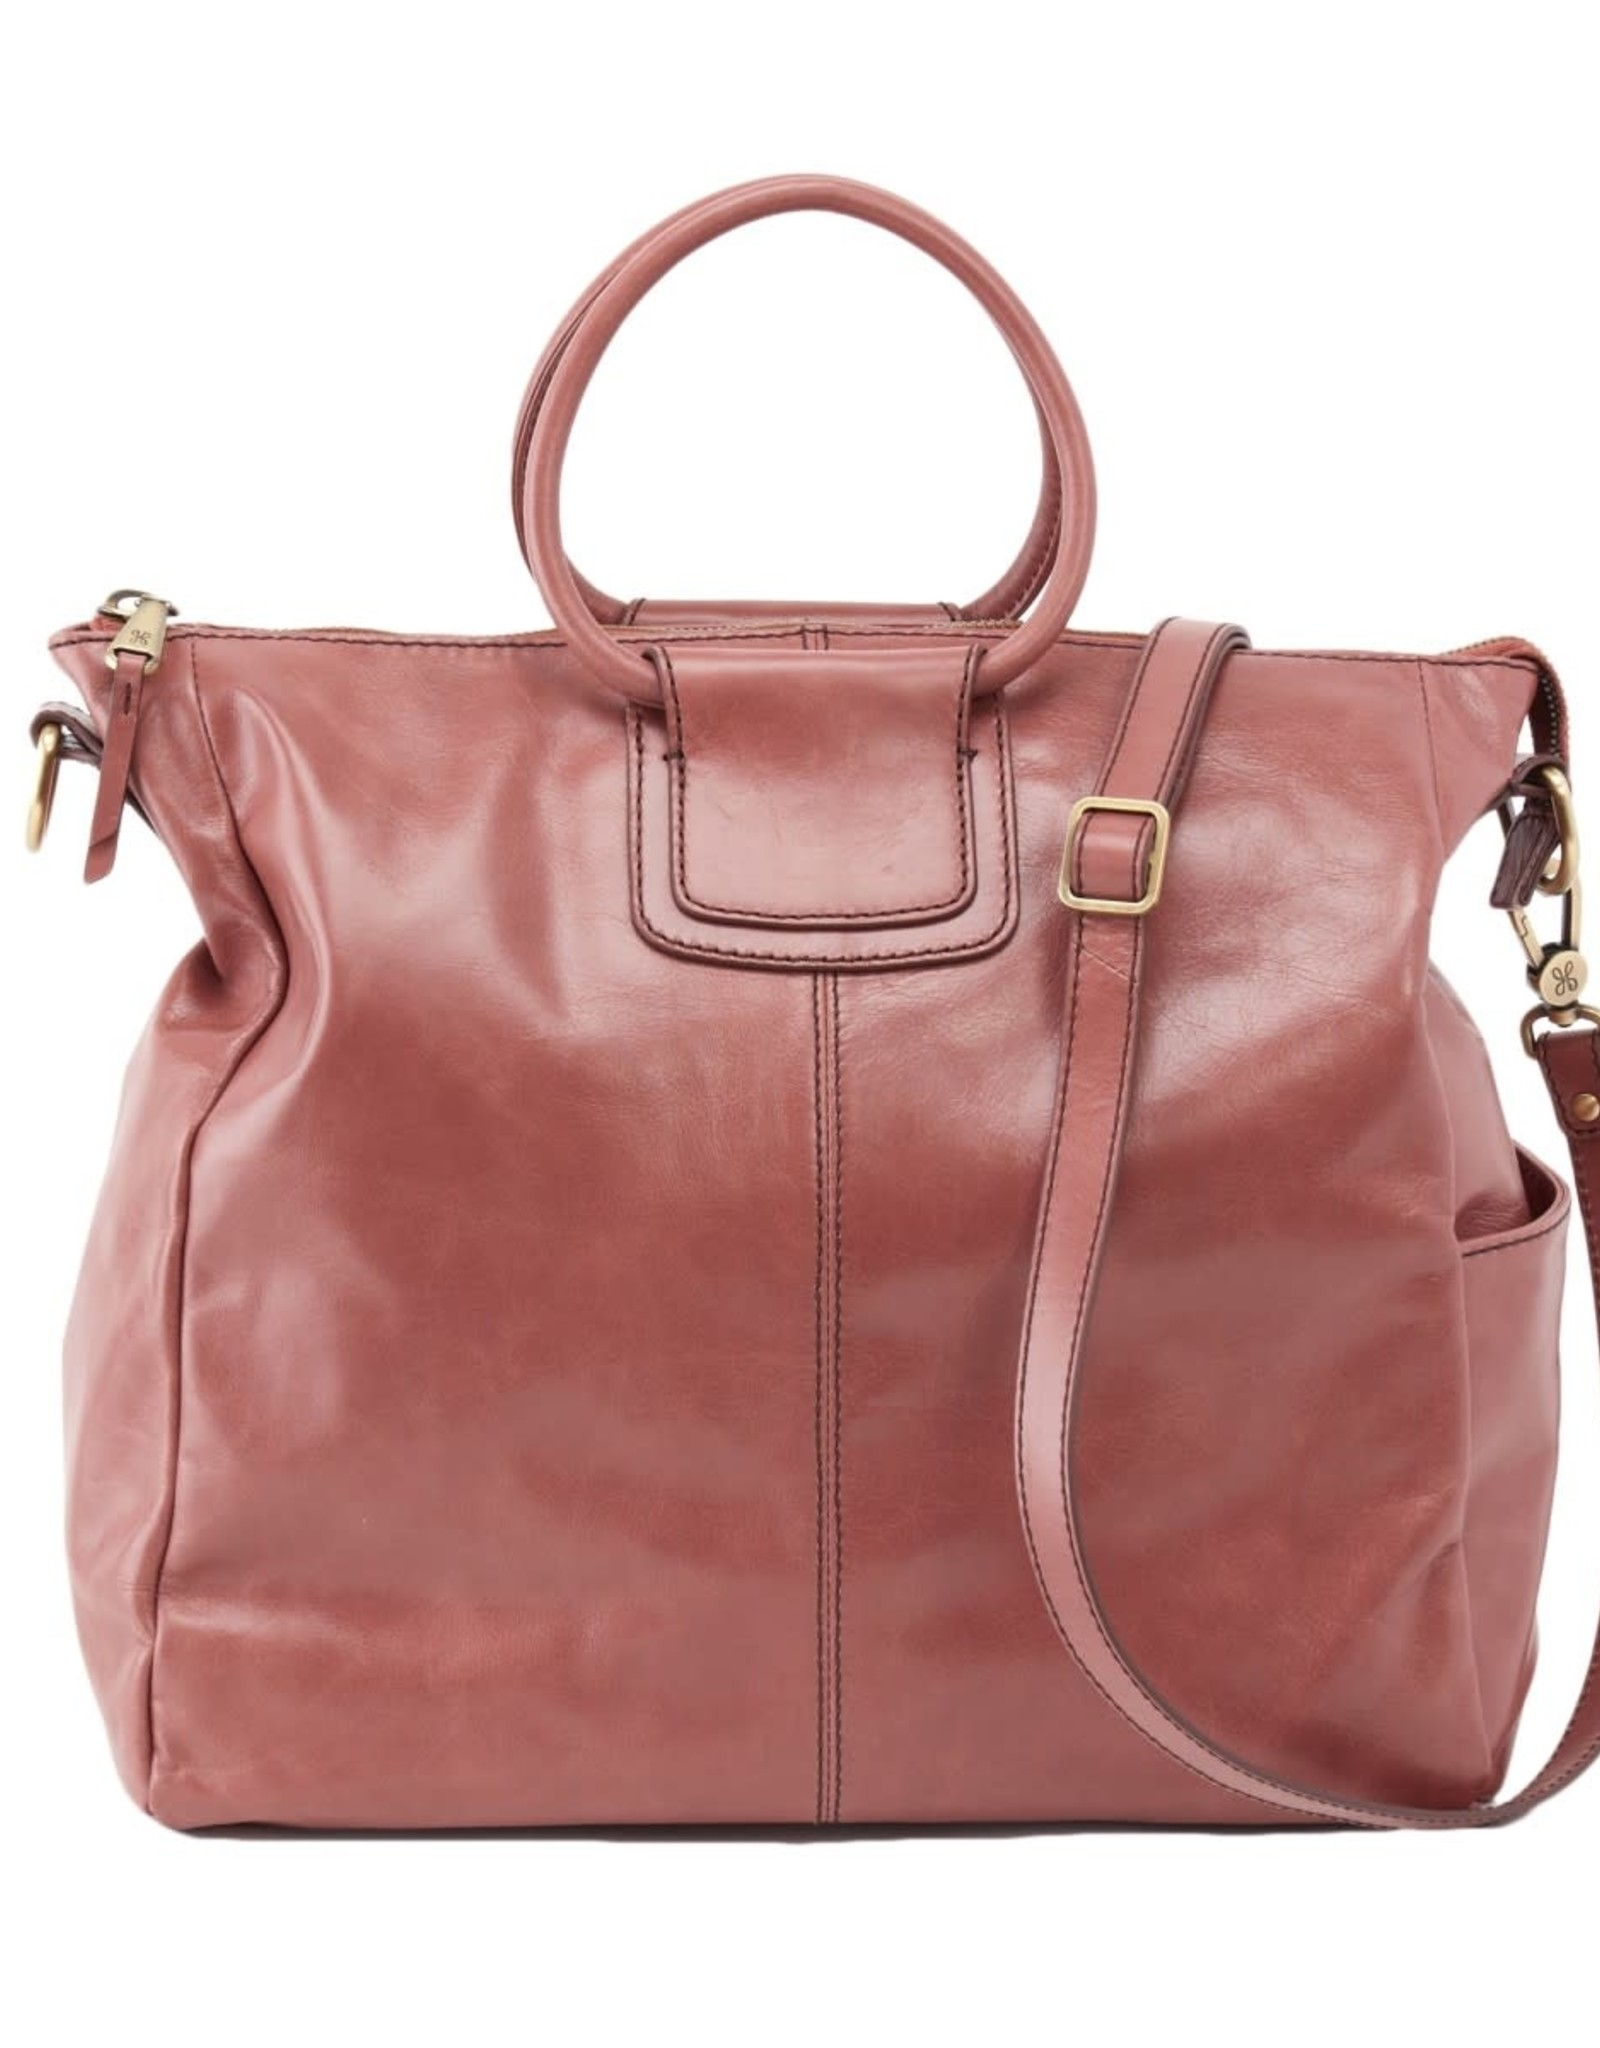 HOBO Sheila Purse - Burnished Rose